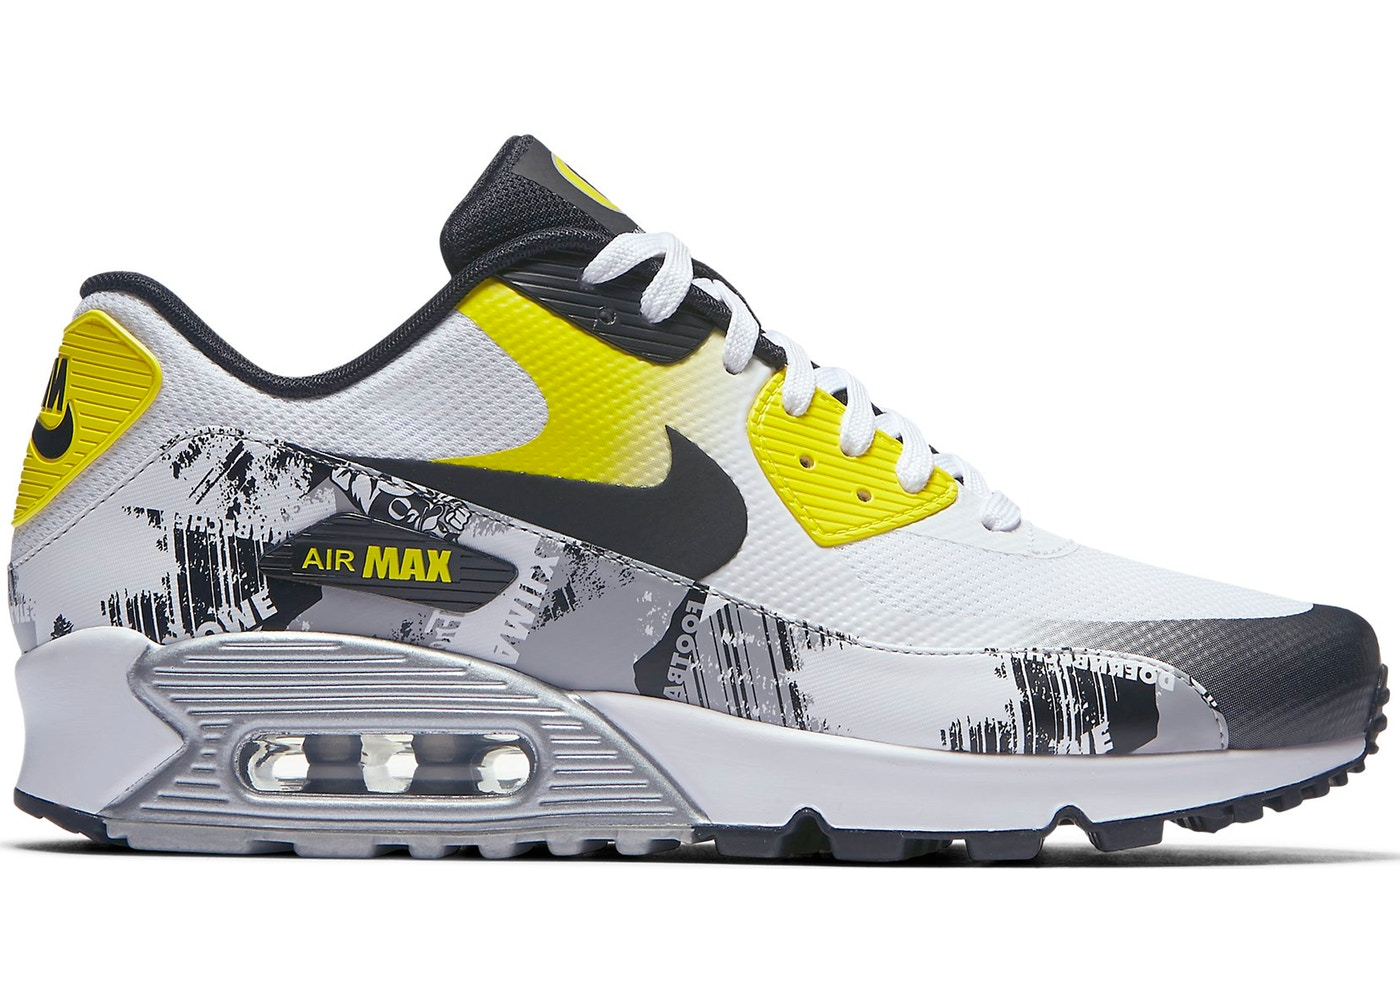 048e36d83 Sell. or Ask. Size: 10W. View All Bids. Air Max 90 Ultra 2.0 Doernbecher  Oregon ...